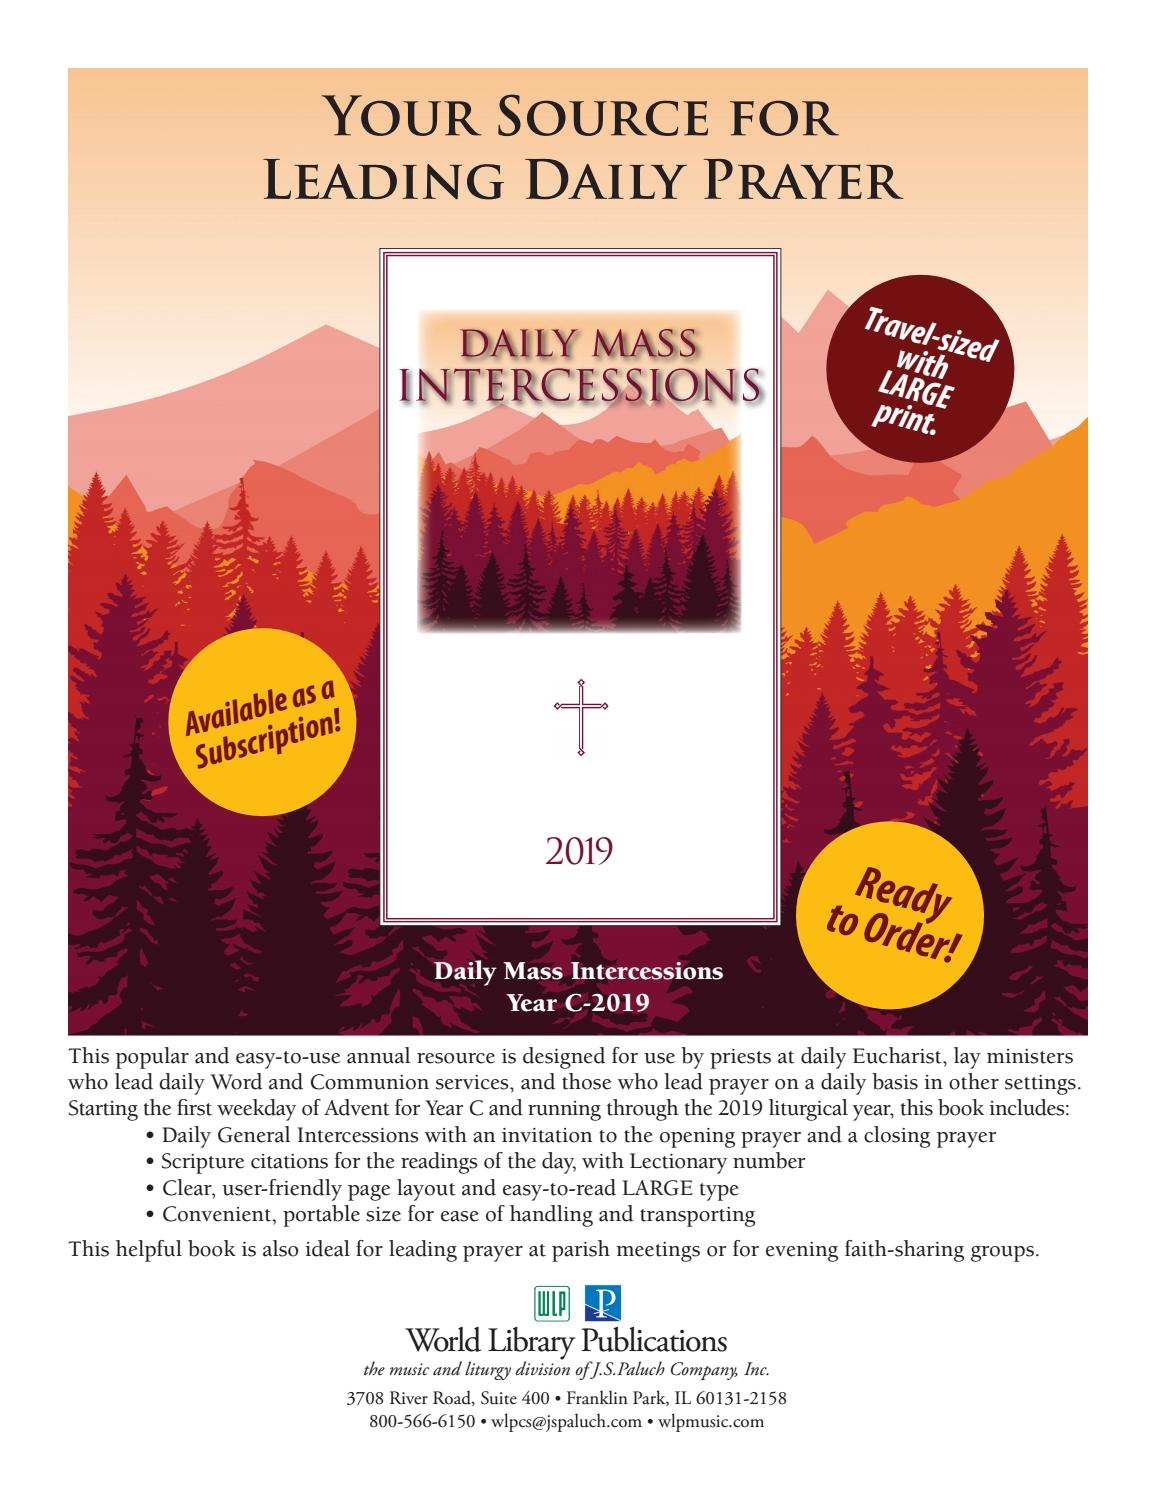 Daily Mass Intercessions 2019 By World Library Publications